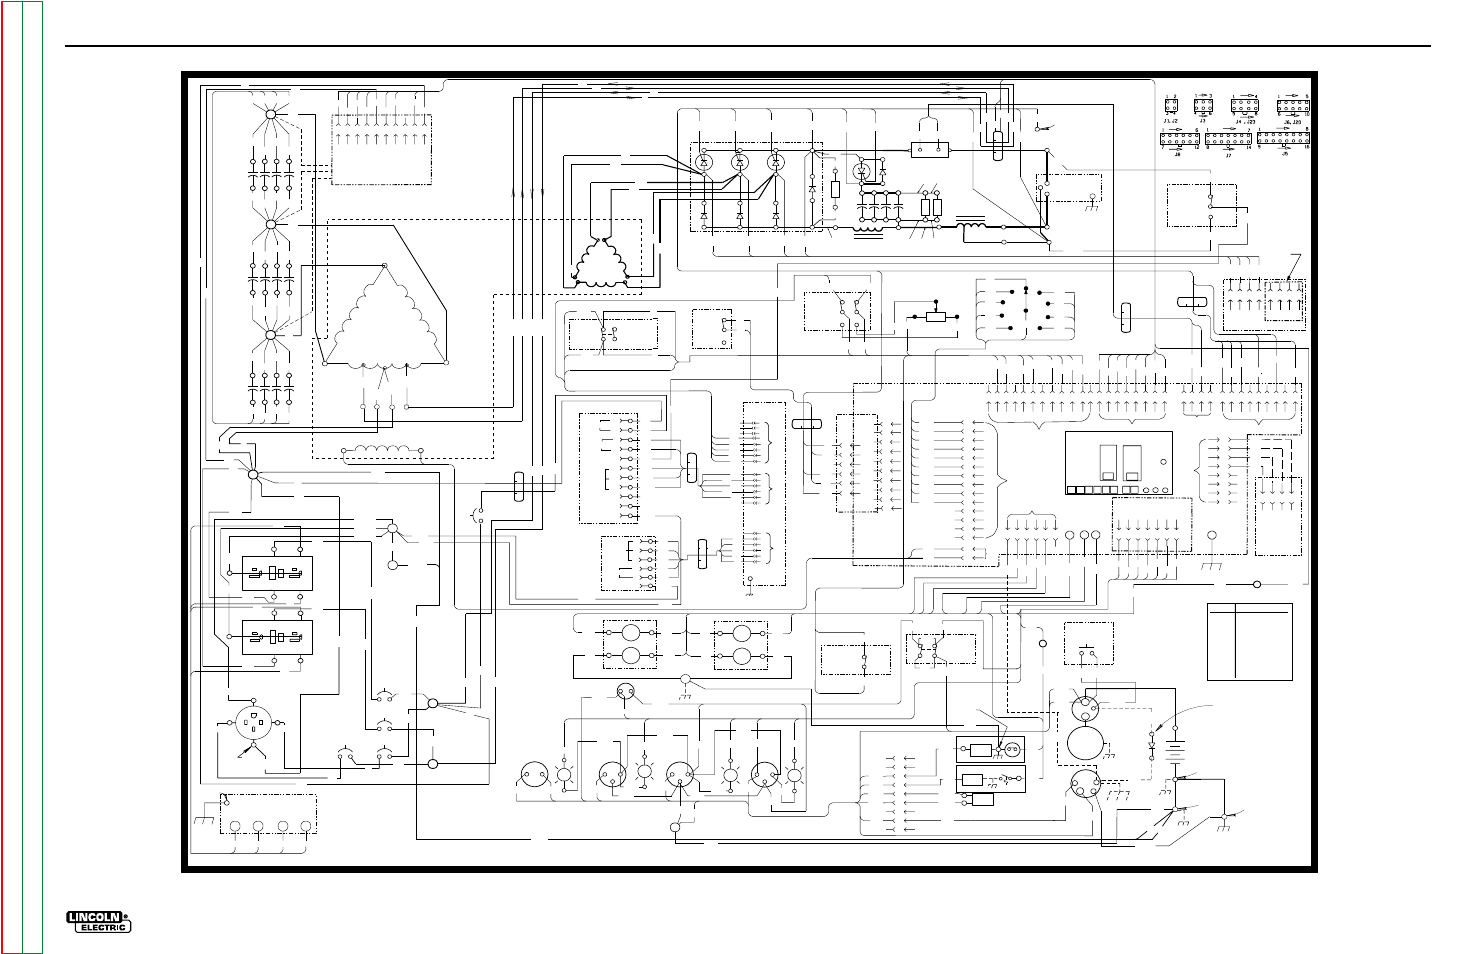 Daewoo Electrical Wiring Diagram